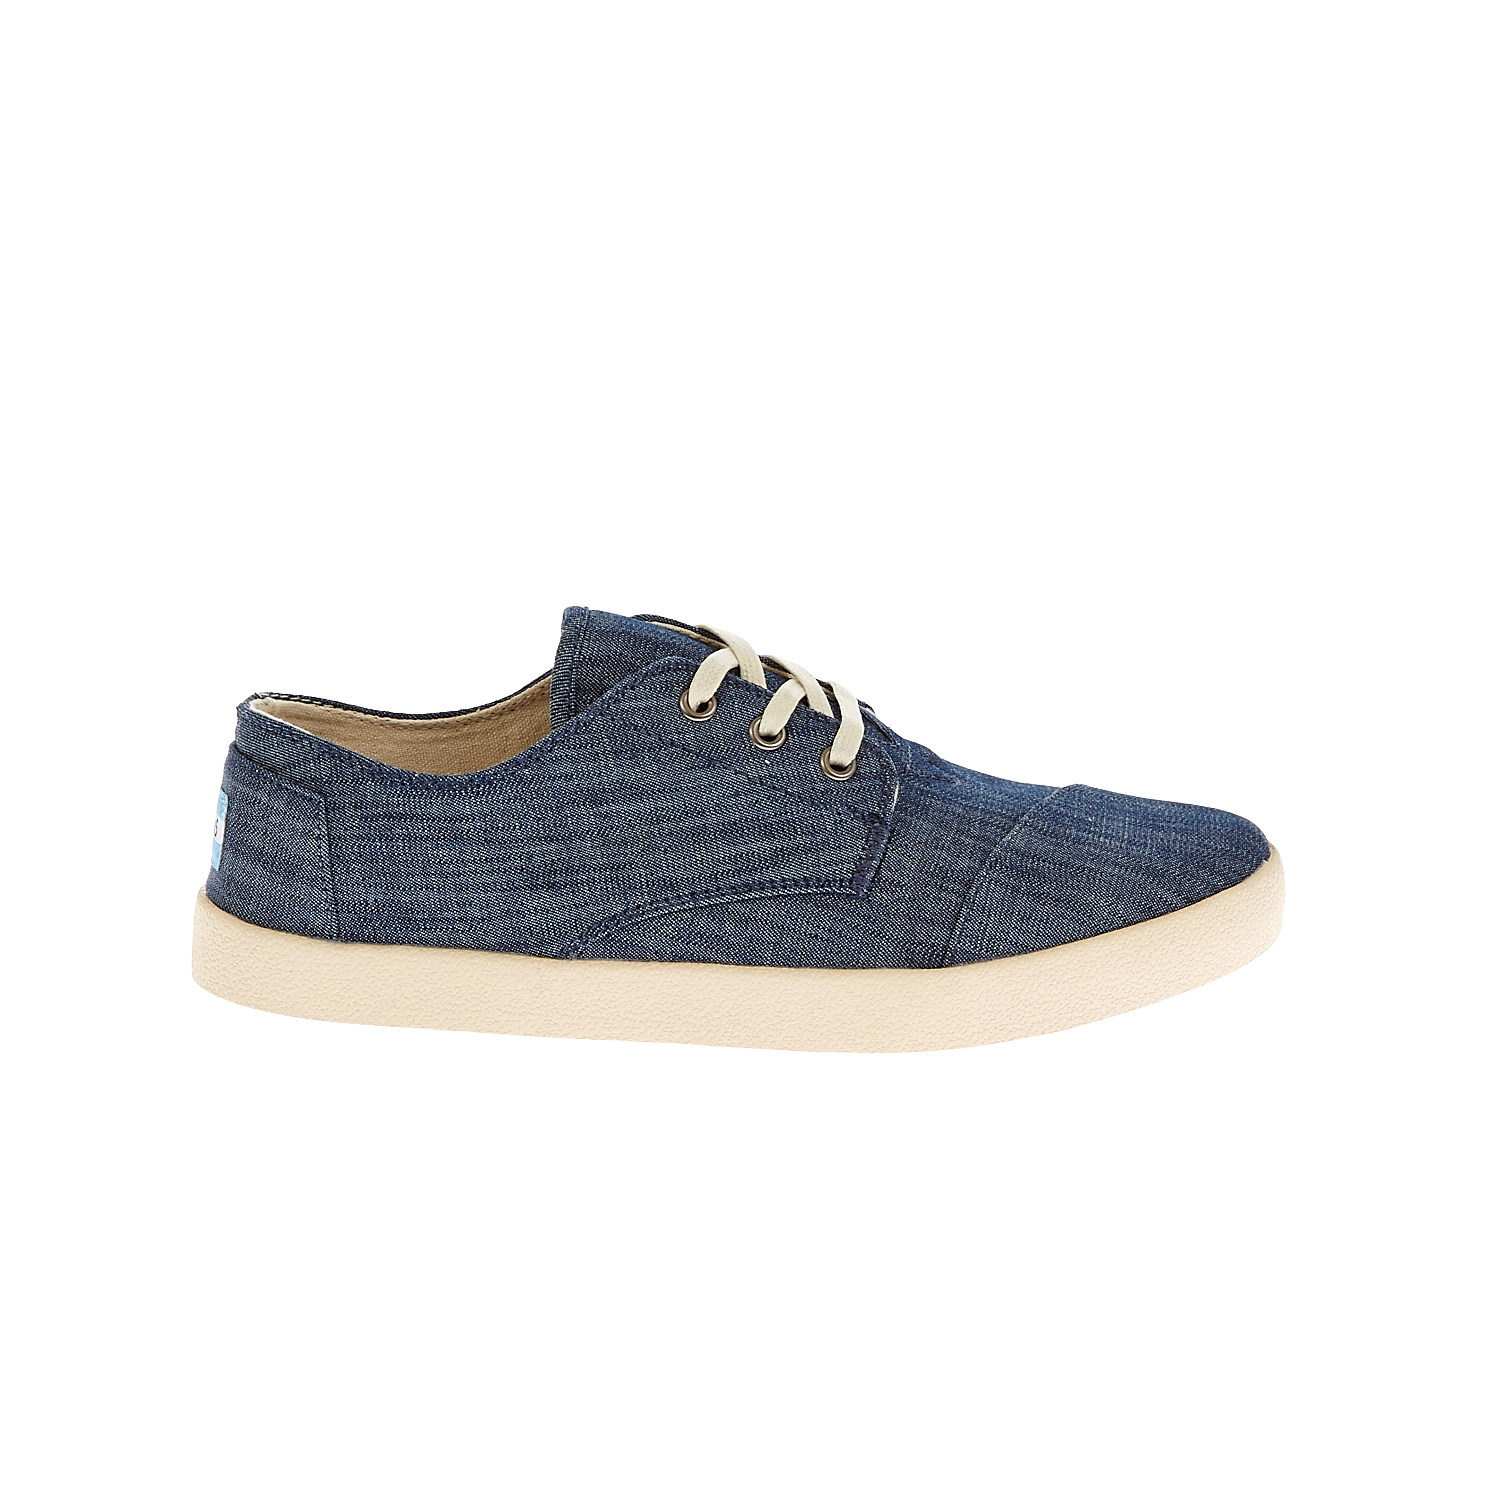 TOMS – Ανδρικά sneakers TOMS ντένιμ